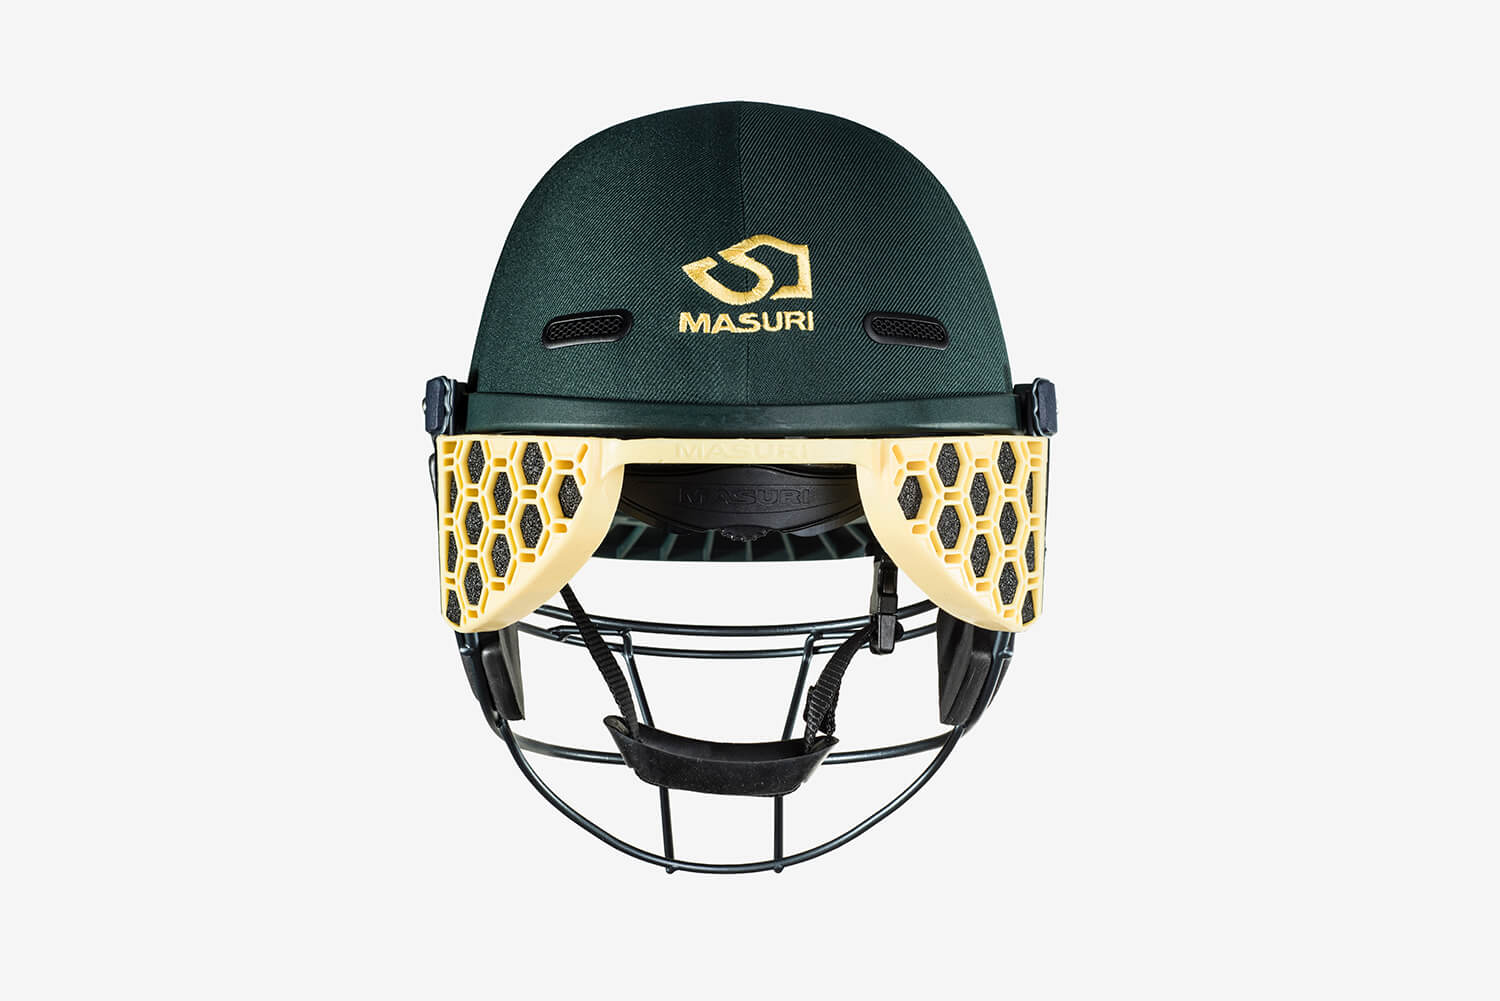 Safe design of Masuri cricket helmet